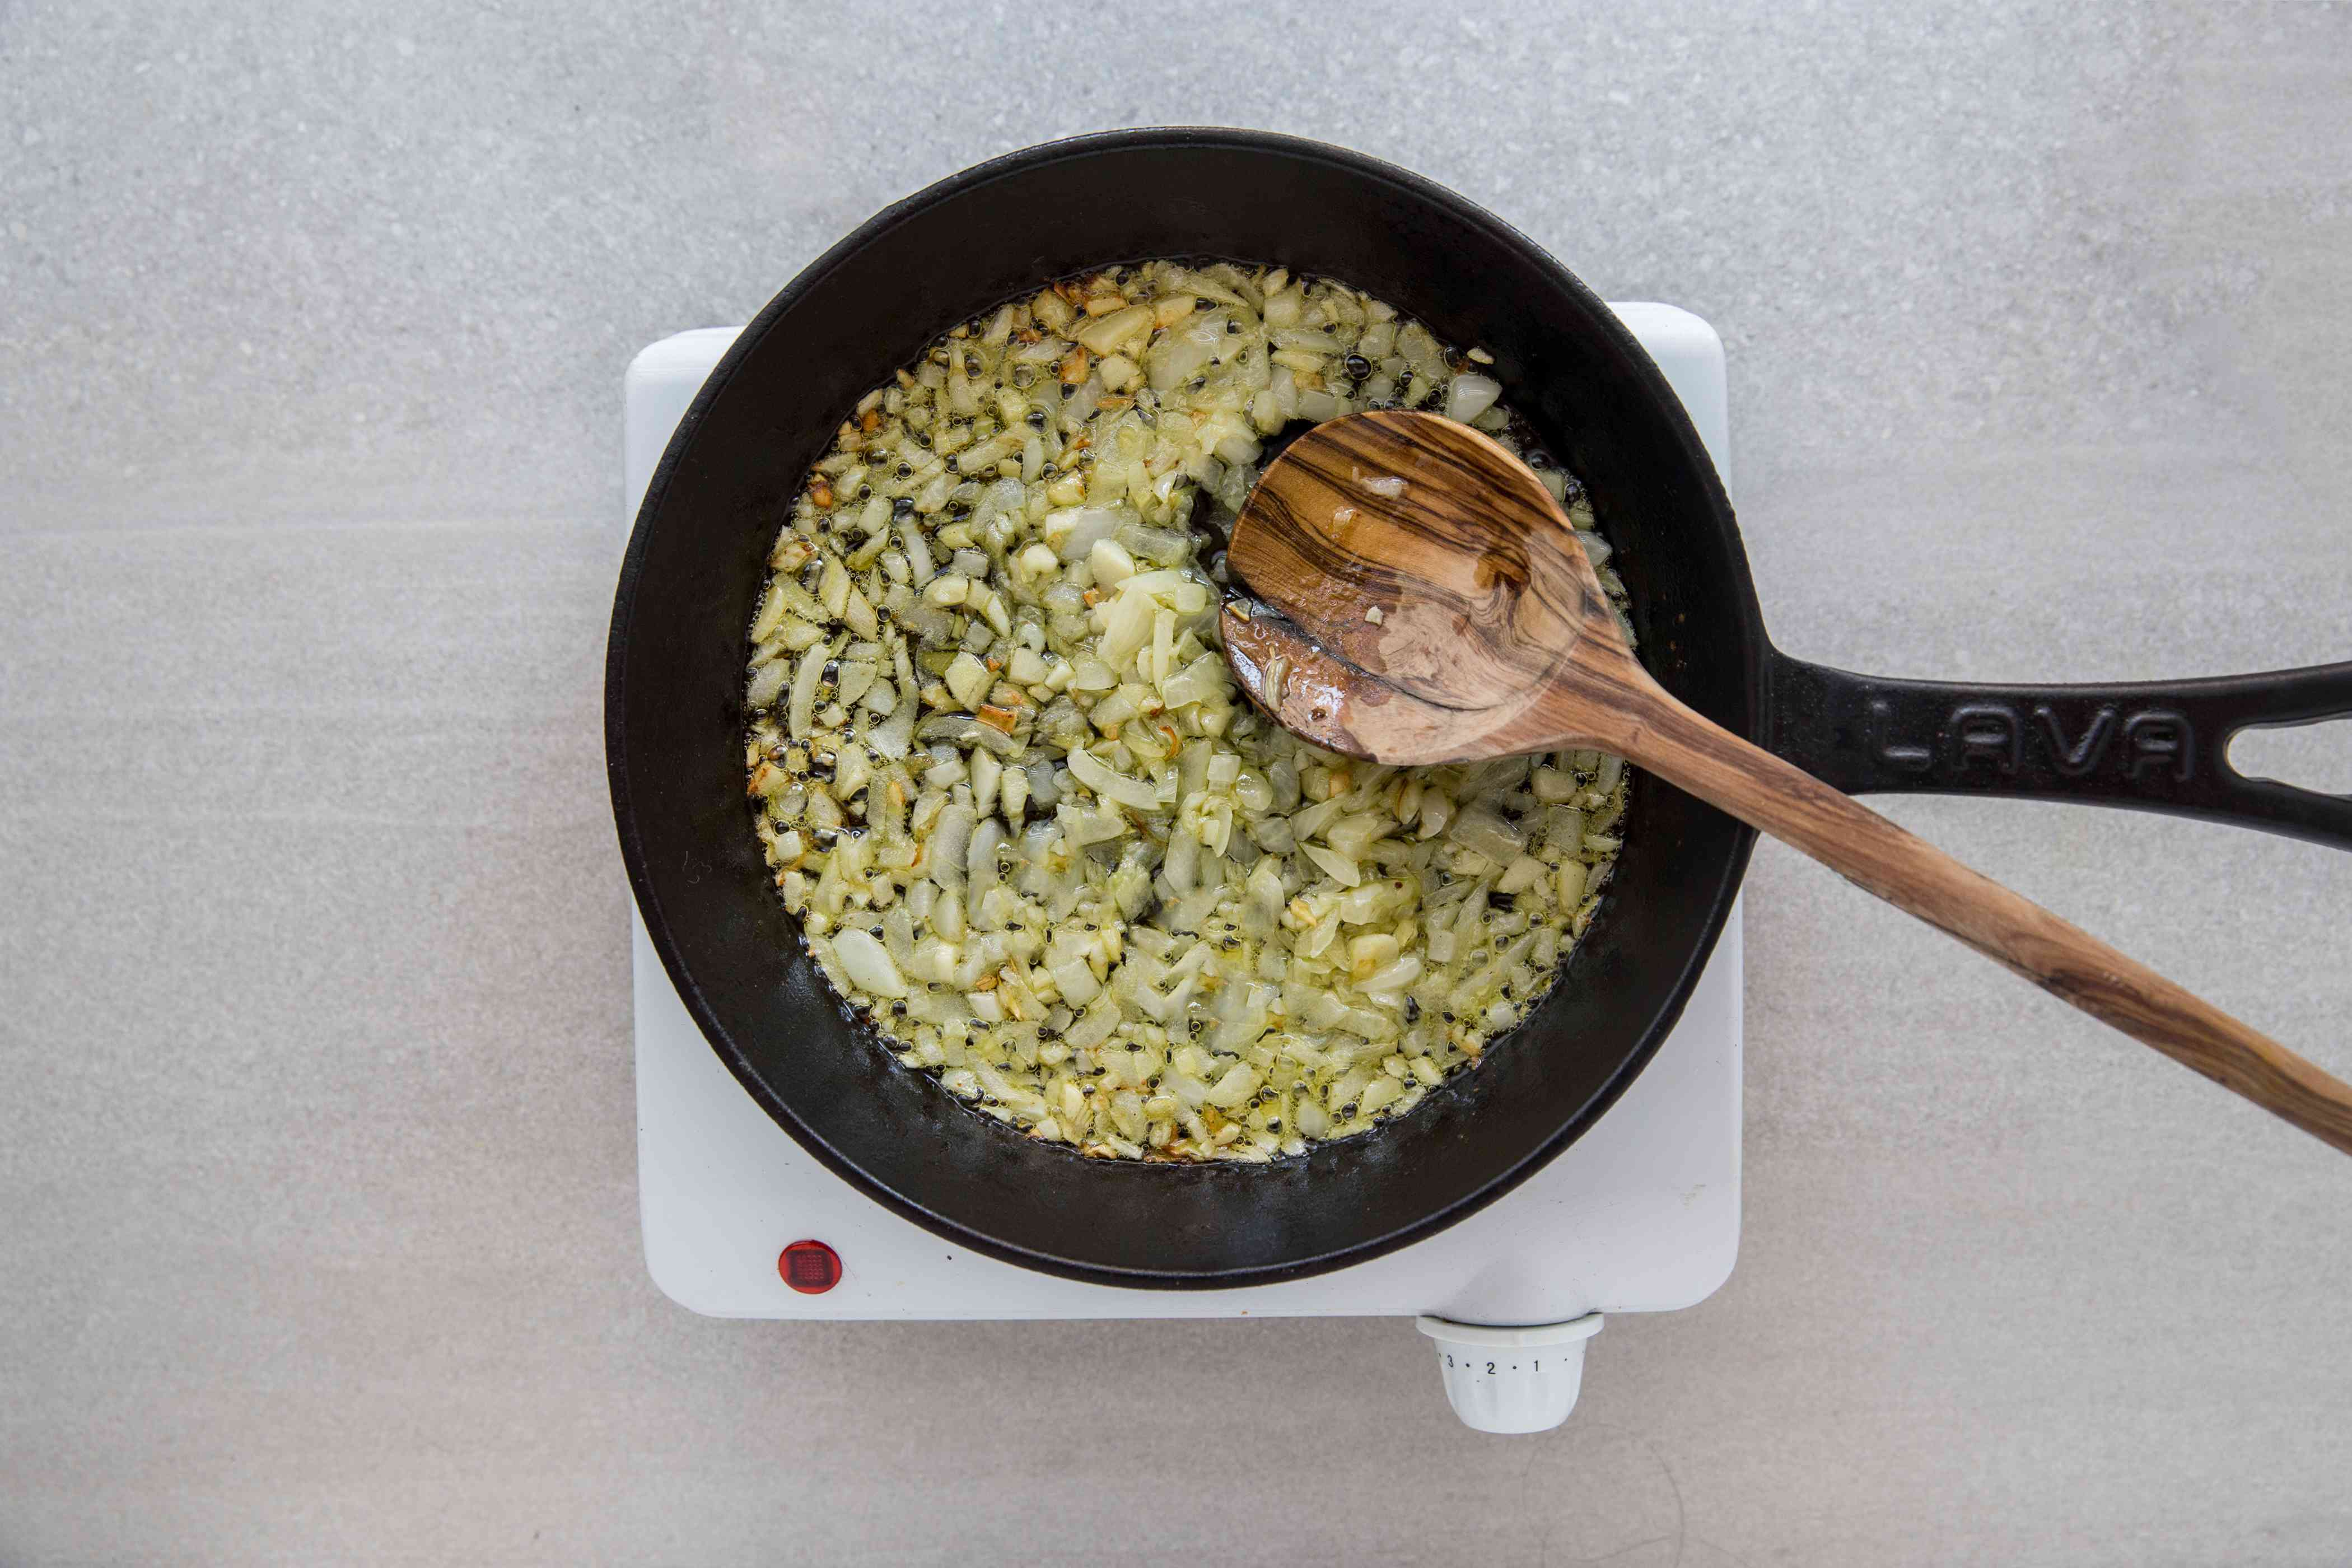 onions and garlic cooking in a cast iron pan